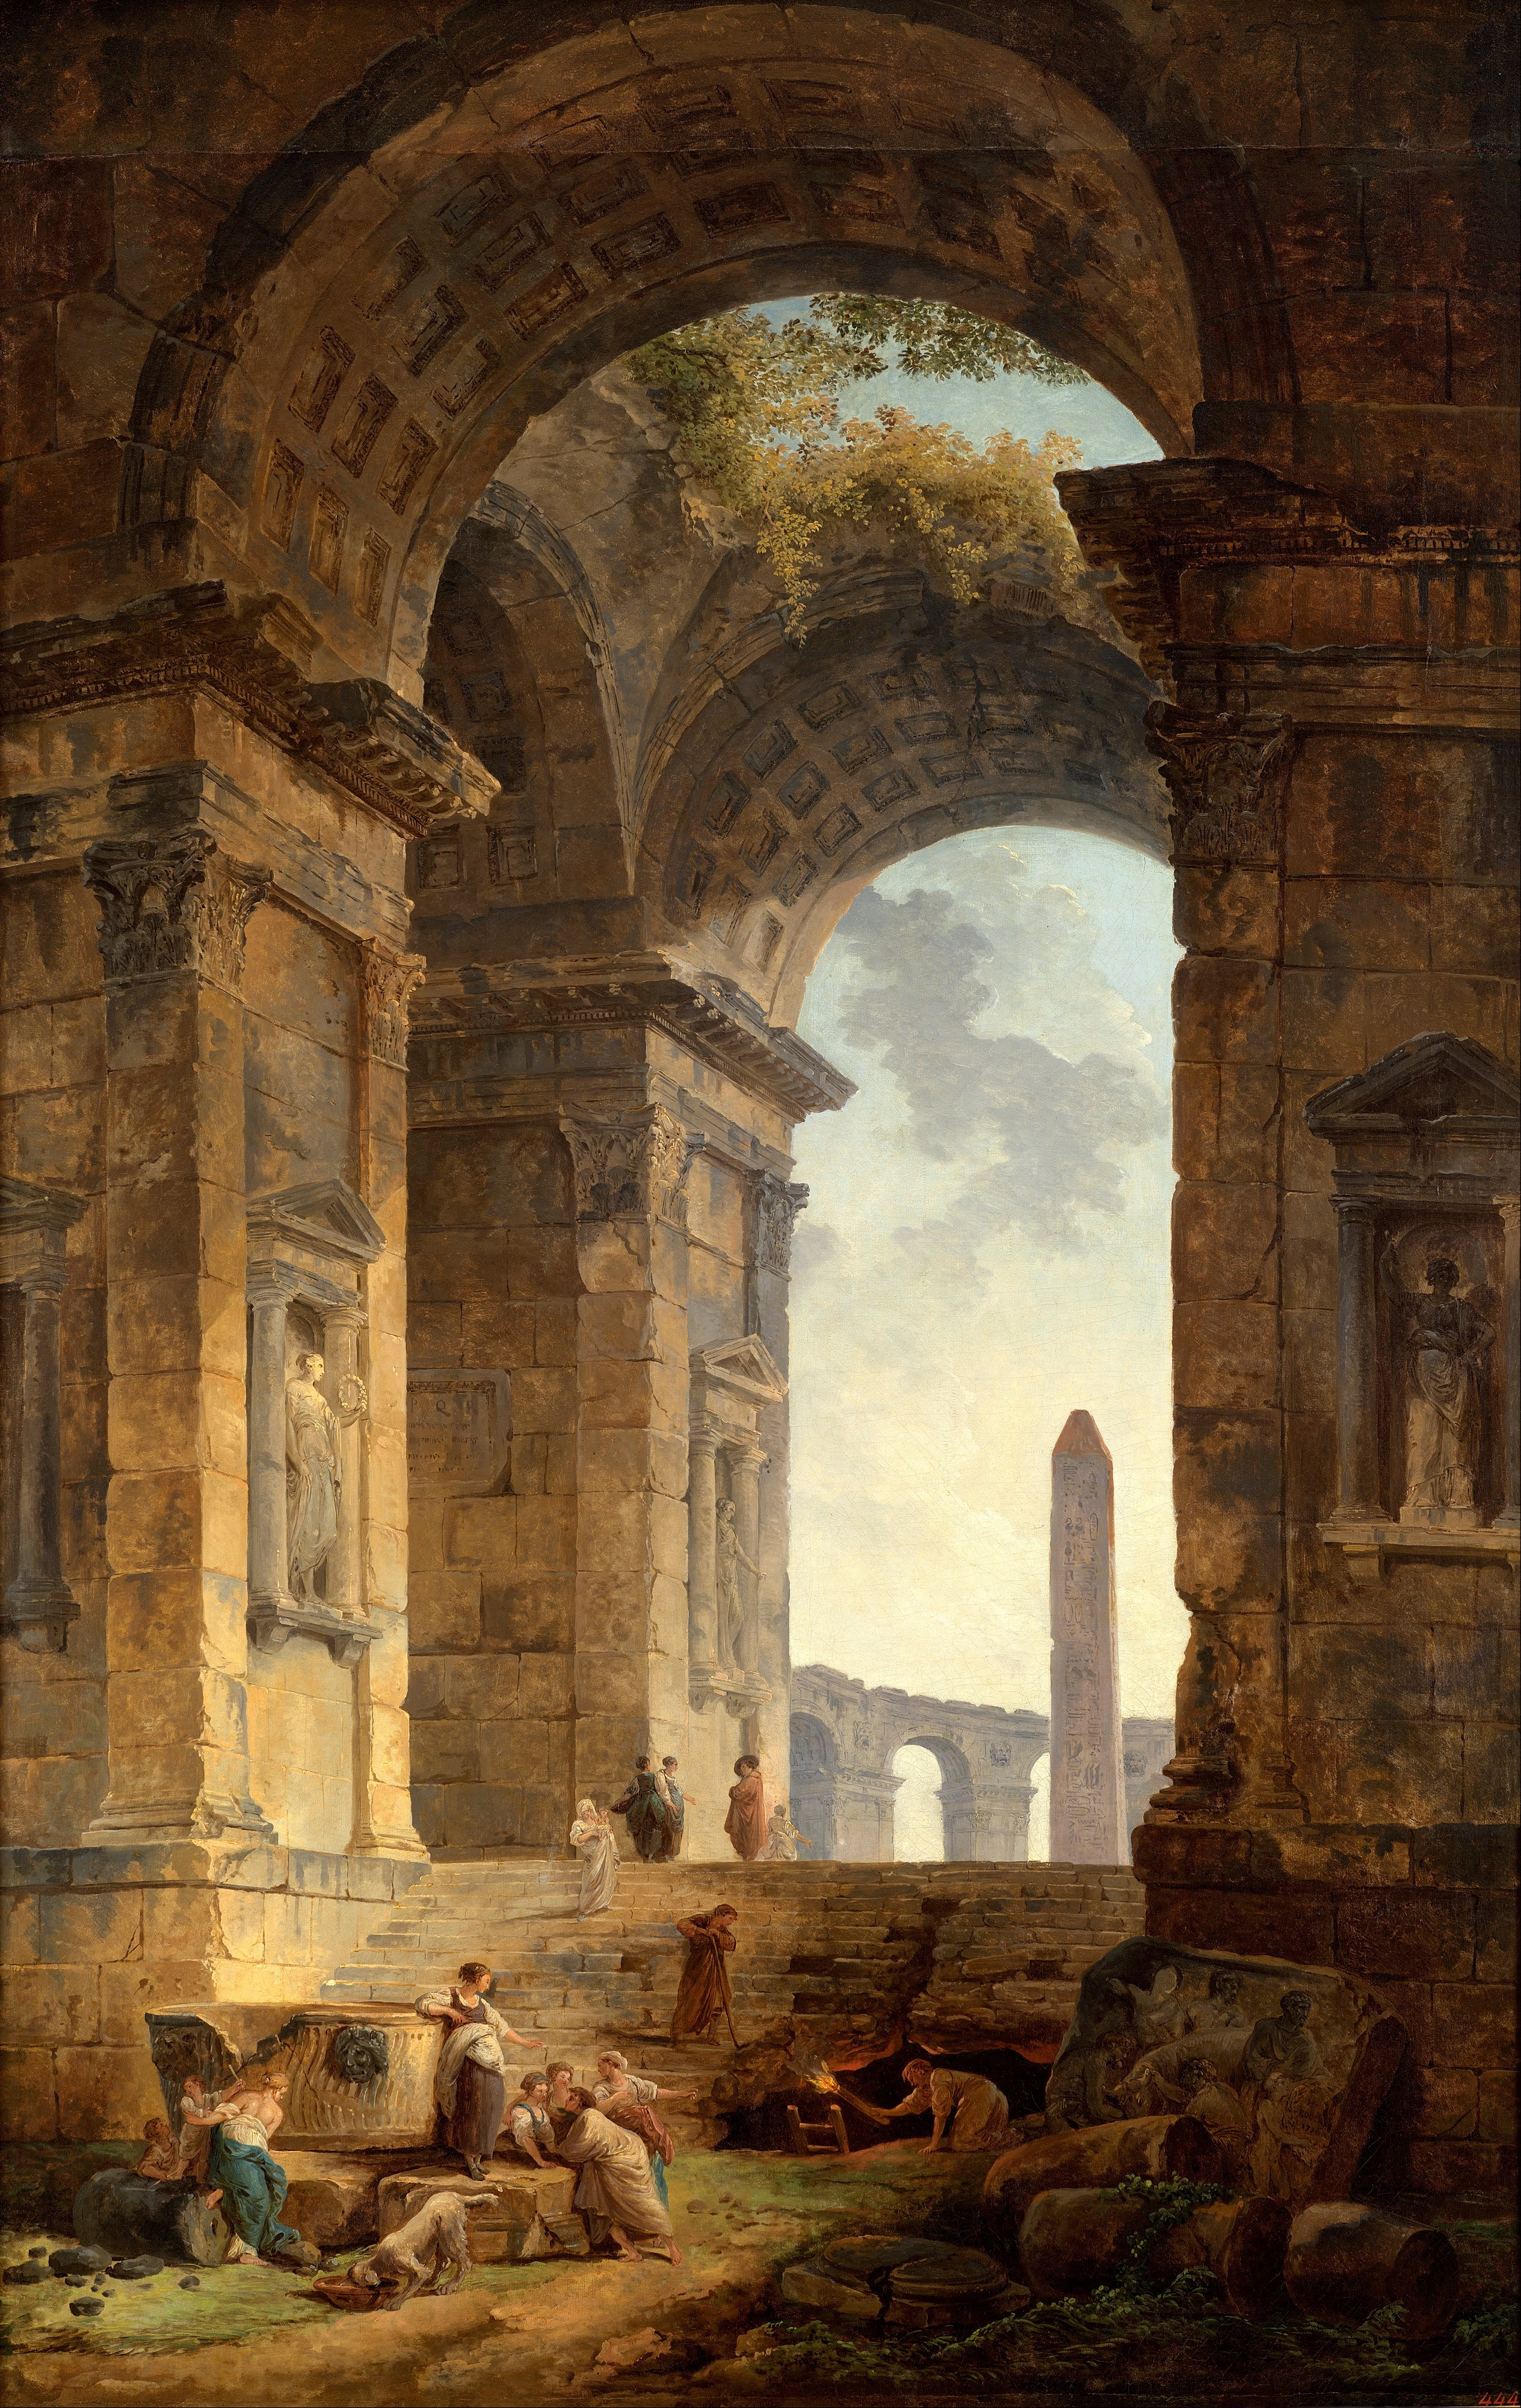 File:Hubert Robert - Ruins with an obelisk in the distance - Google ...: commons.wikimedia.org/wiki/file:hubert_robert_-_ruins_with_an...